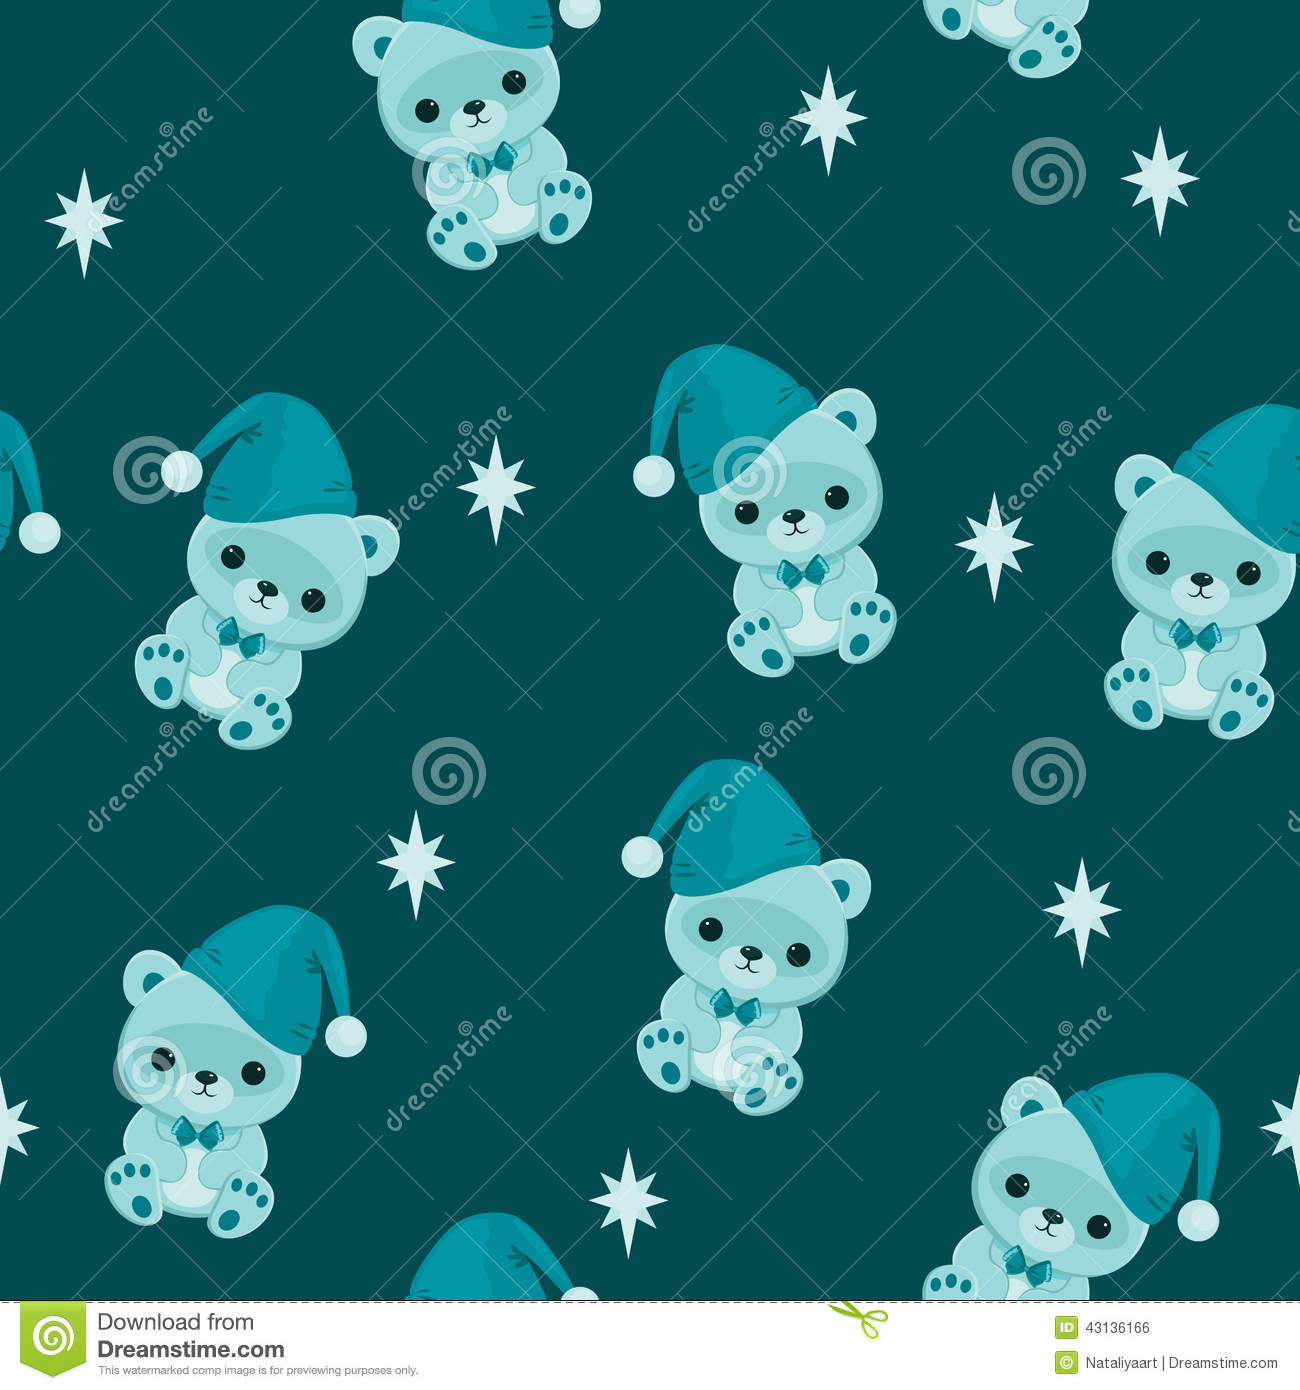 Shiva Animated Wallpaper Hd Download Blue Teddy Bear Wallpapers Gallery